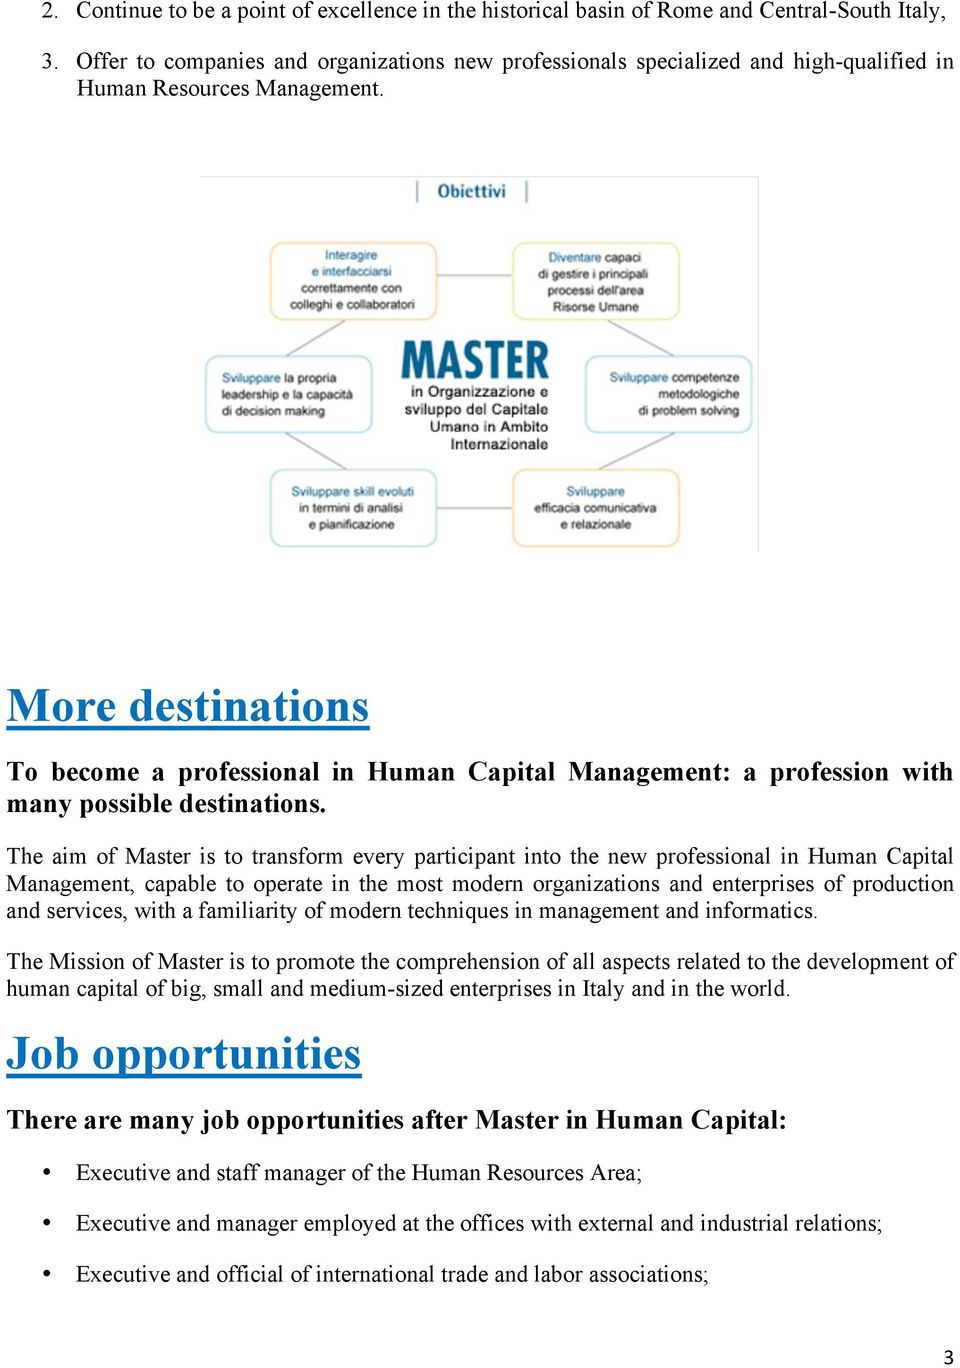 More destinations To become a professional in Human Capital Management: a profession with many possible destinations.